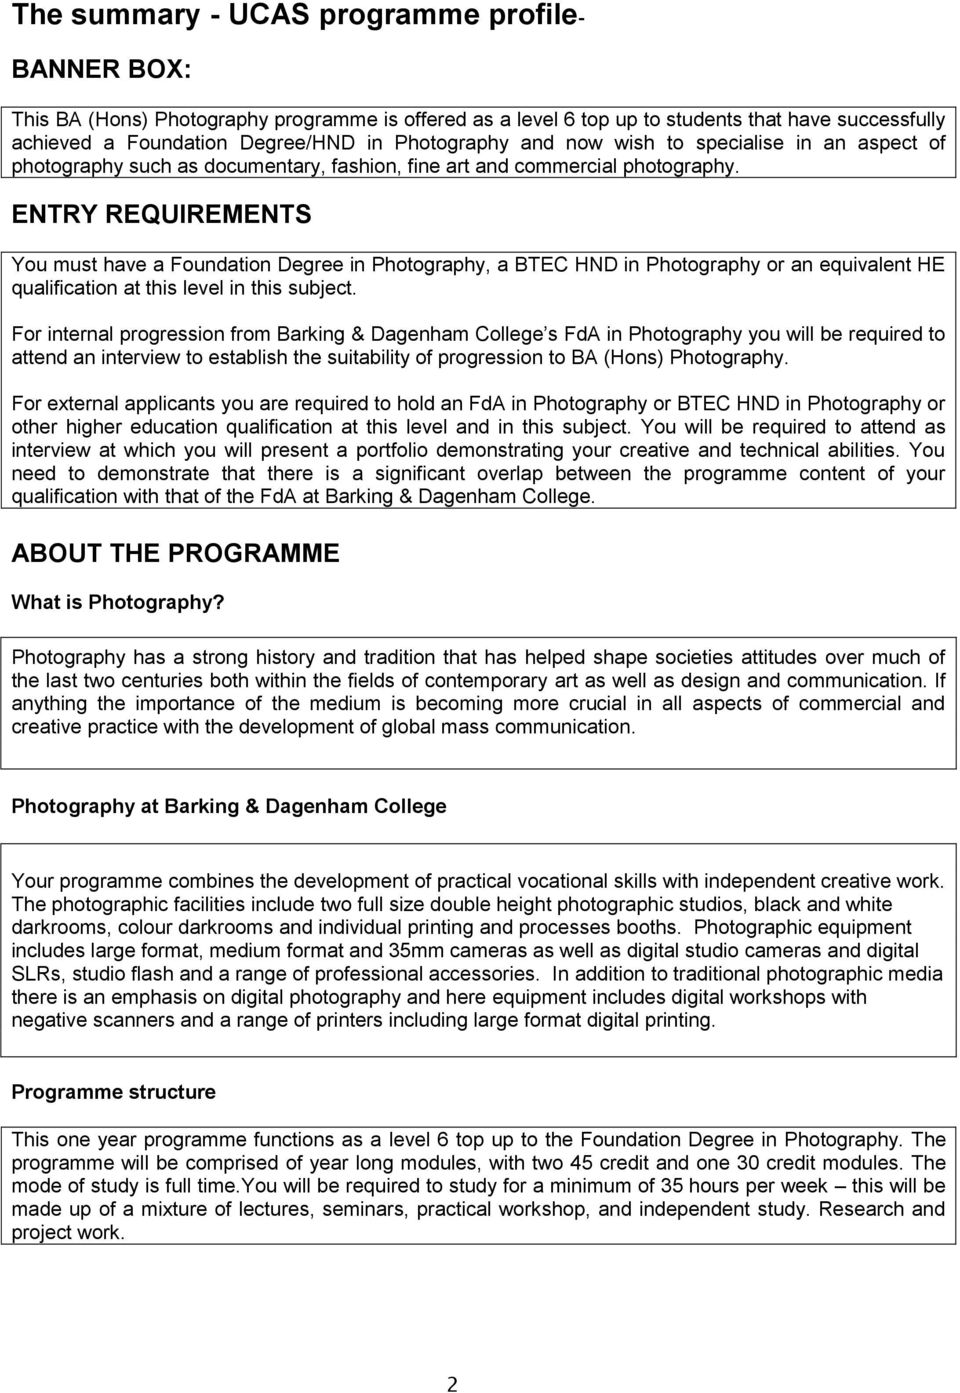 ENTRY REQUIREMENTS You must have a Foundation Degree in Photography, a BTEC HND in Photography or an equivalent HE qualification at this level in this subject.